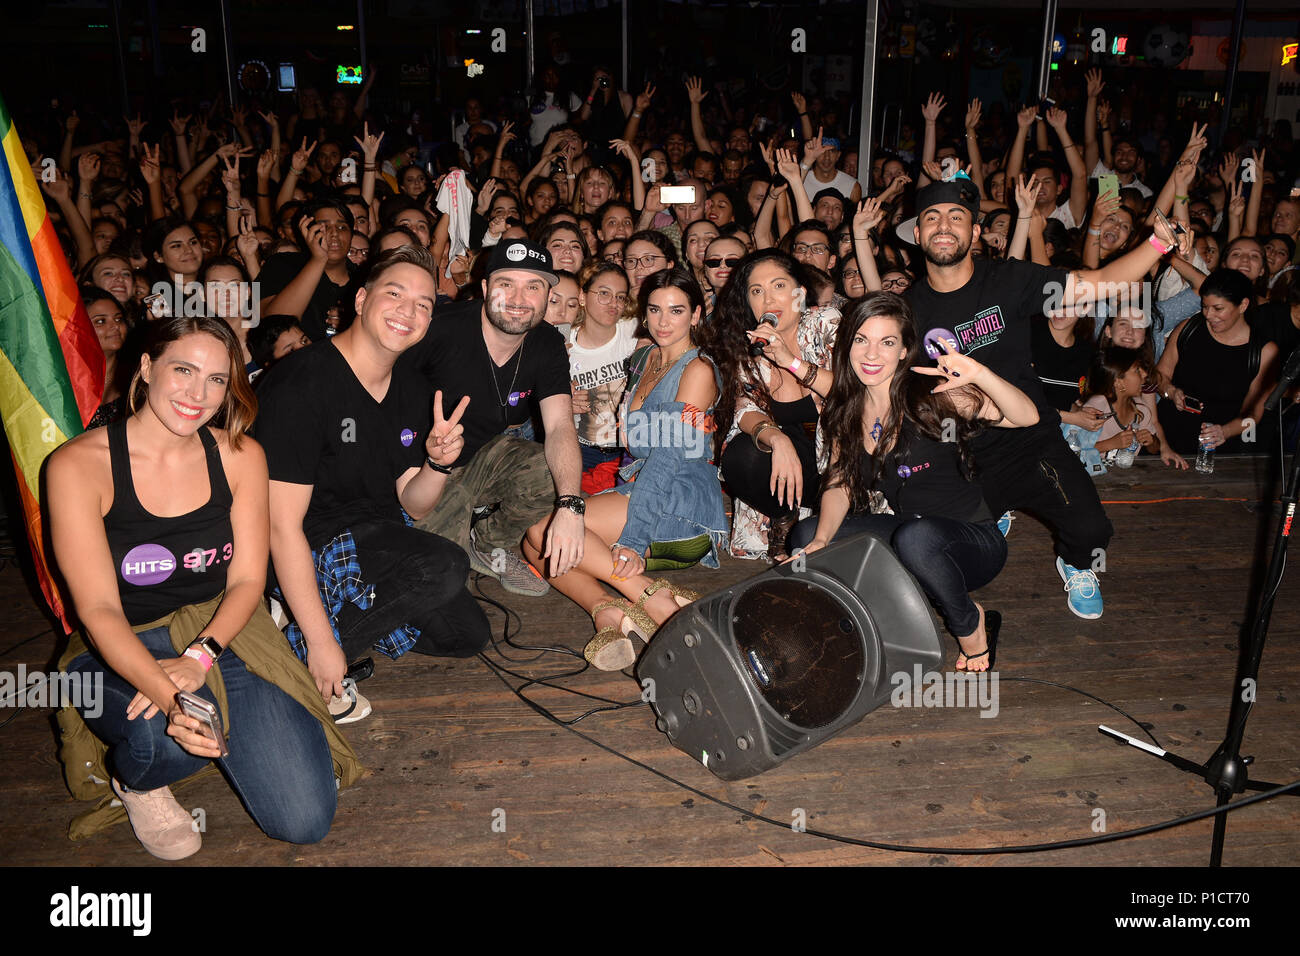 Dua Lipa Pictured During Hits 97.3 Sessions At Americau0027s Backyard On June  11, 2018 In Fort Lauderdale, Florida. Credit: Mpi04/Media Punch/Alamy Live  News